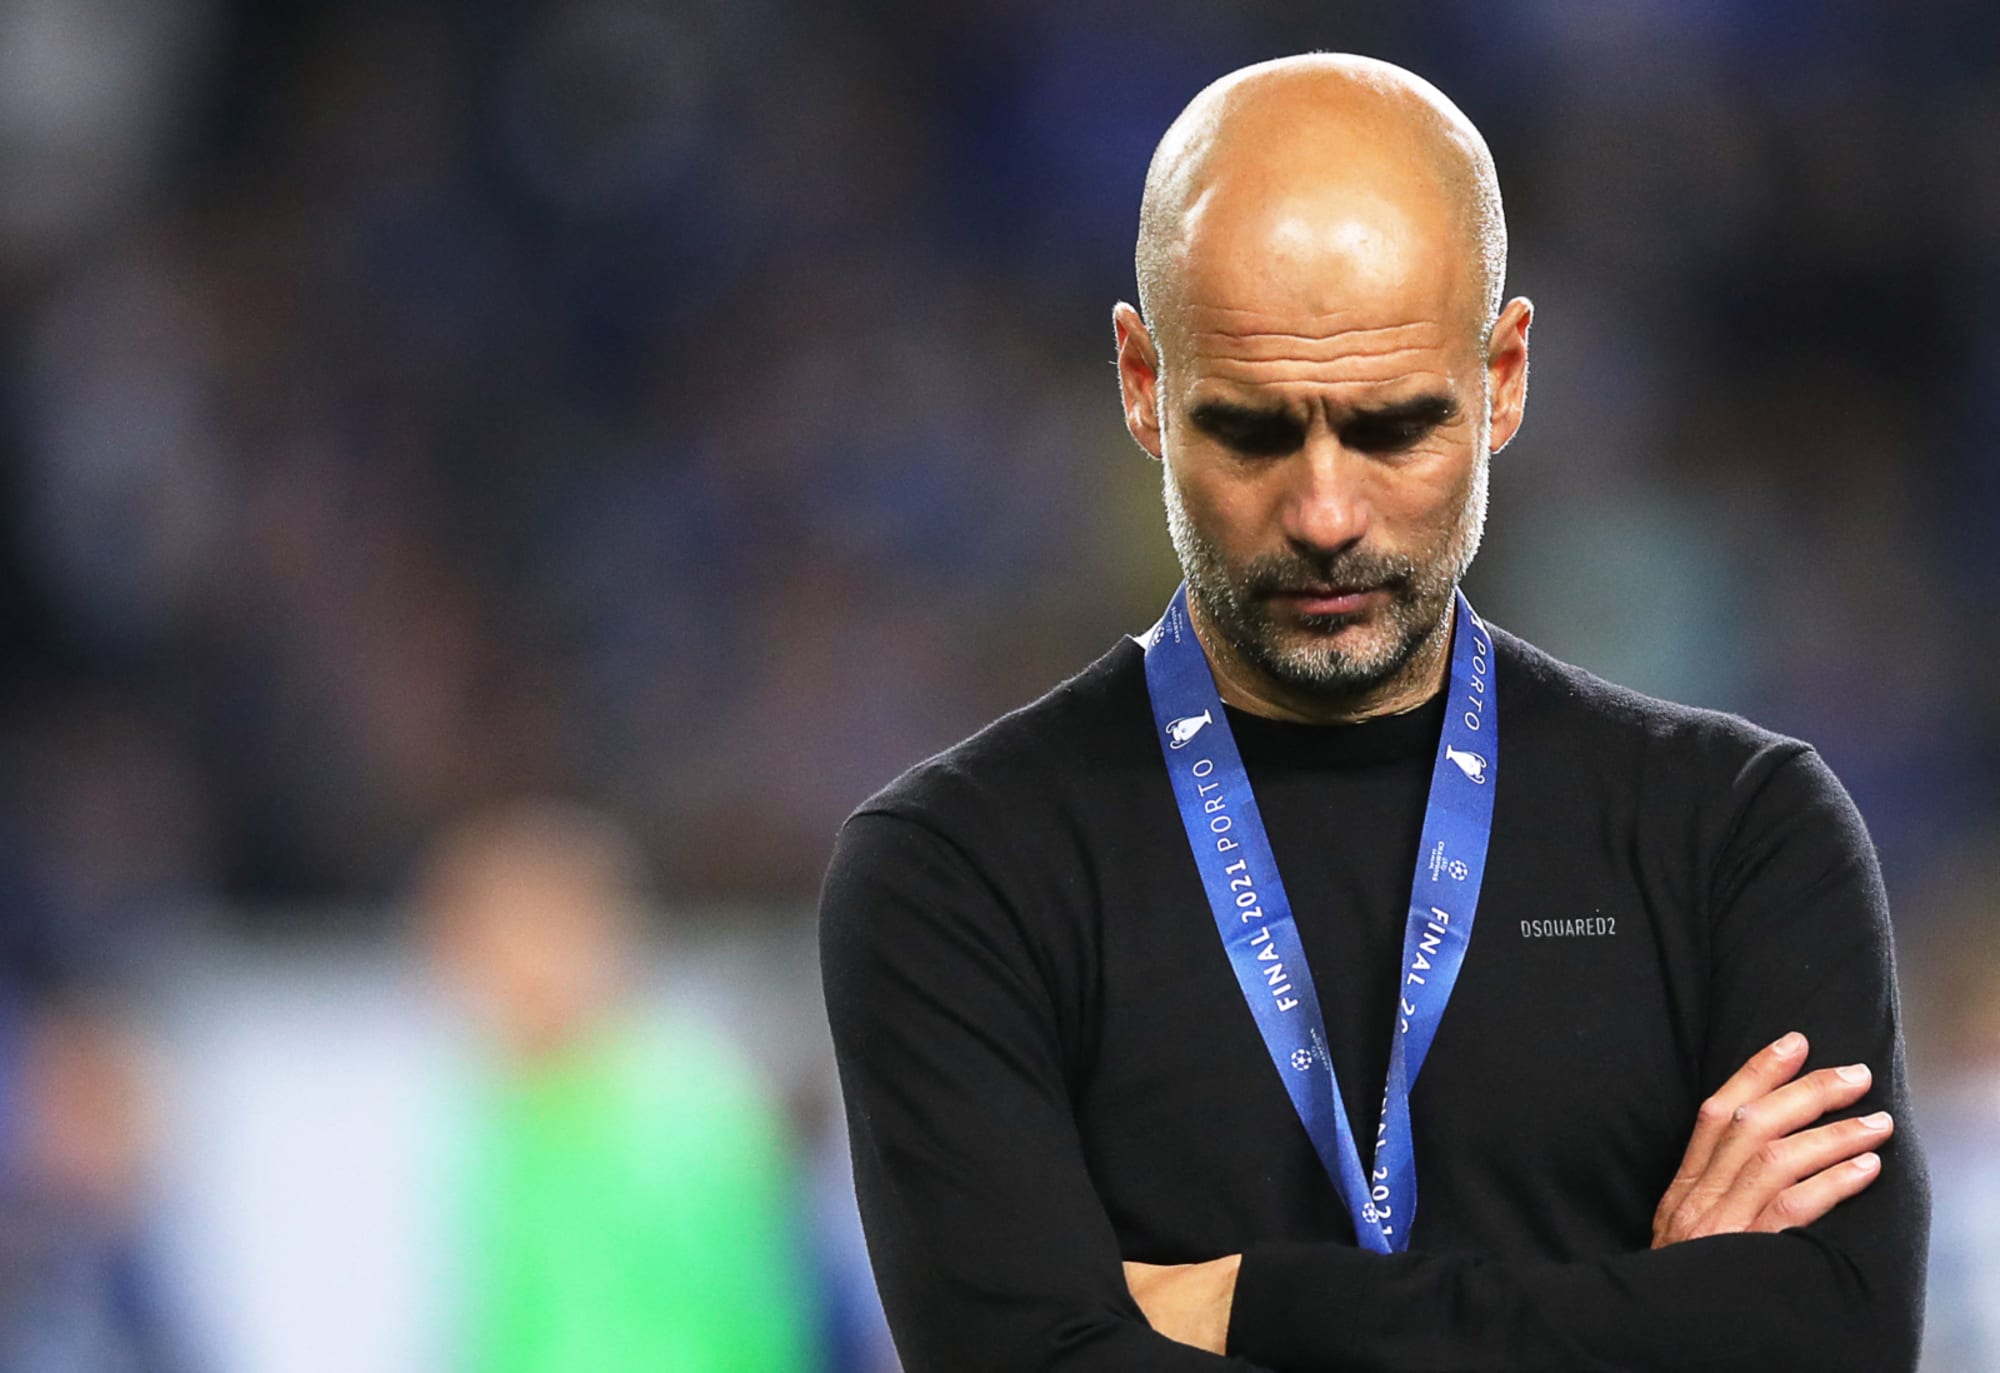 Manchester City boss Pep Guardiola advised to sign Chelsea star